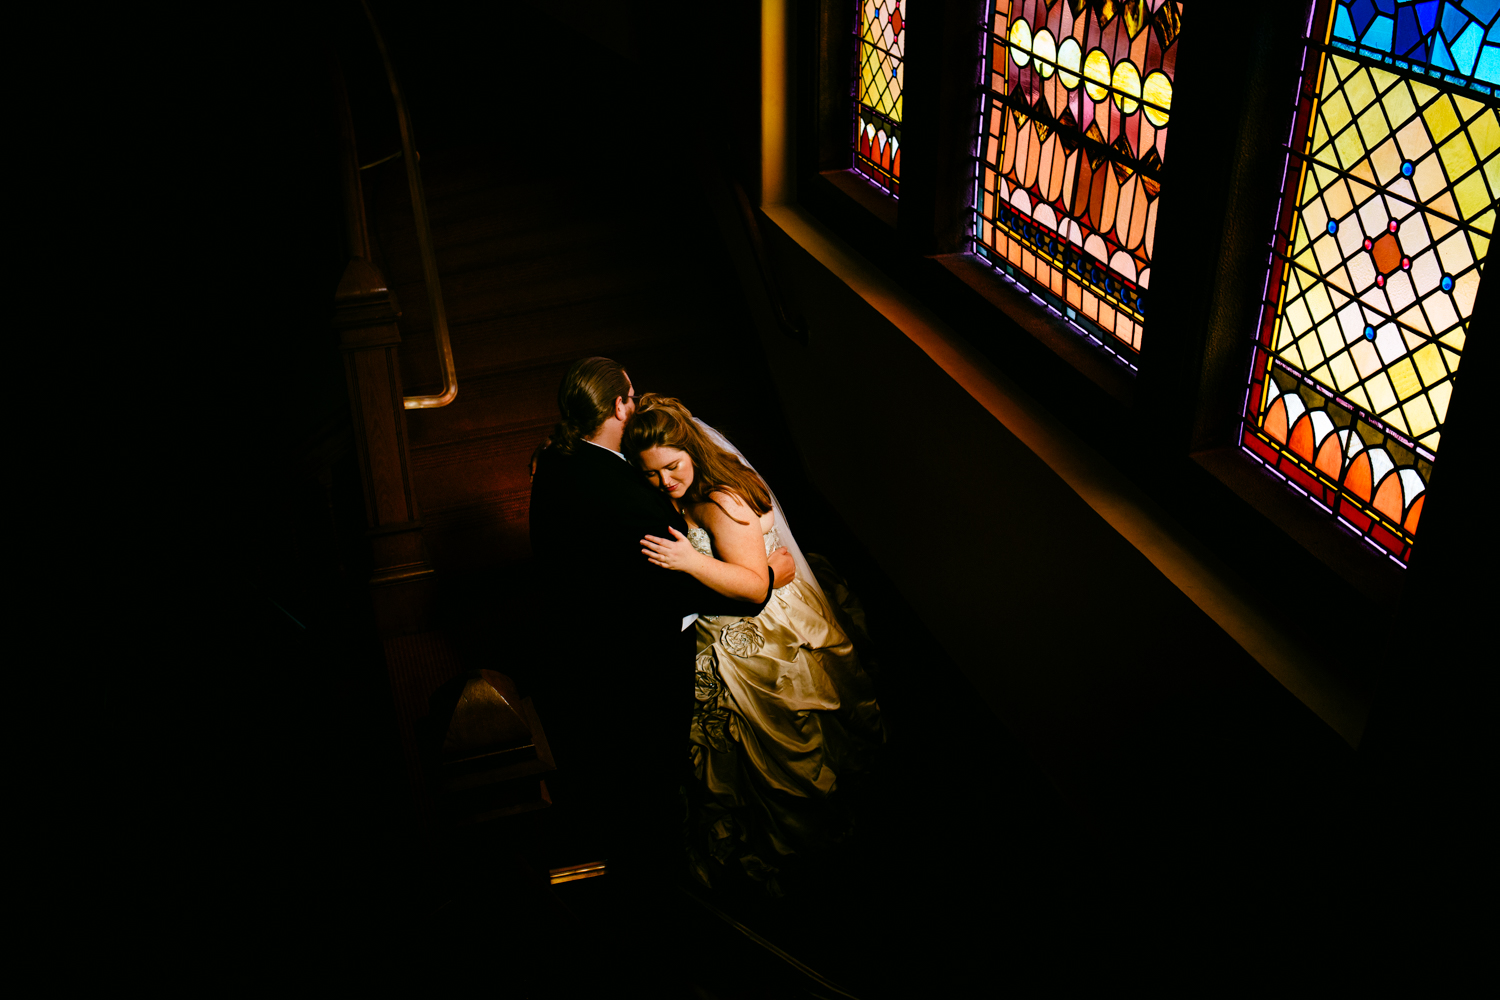 Moody portrait of bride leaning against groom. The background is dark except for a stainglassed window.